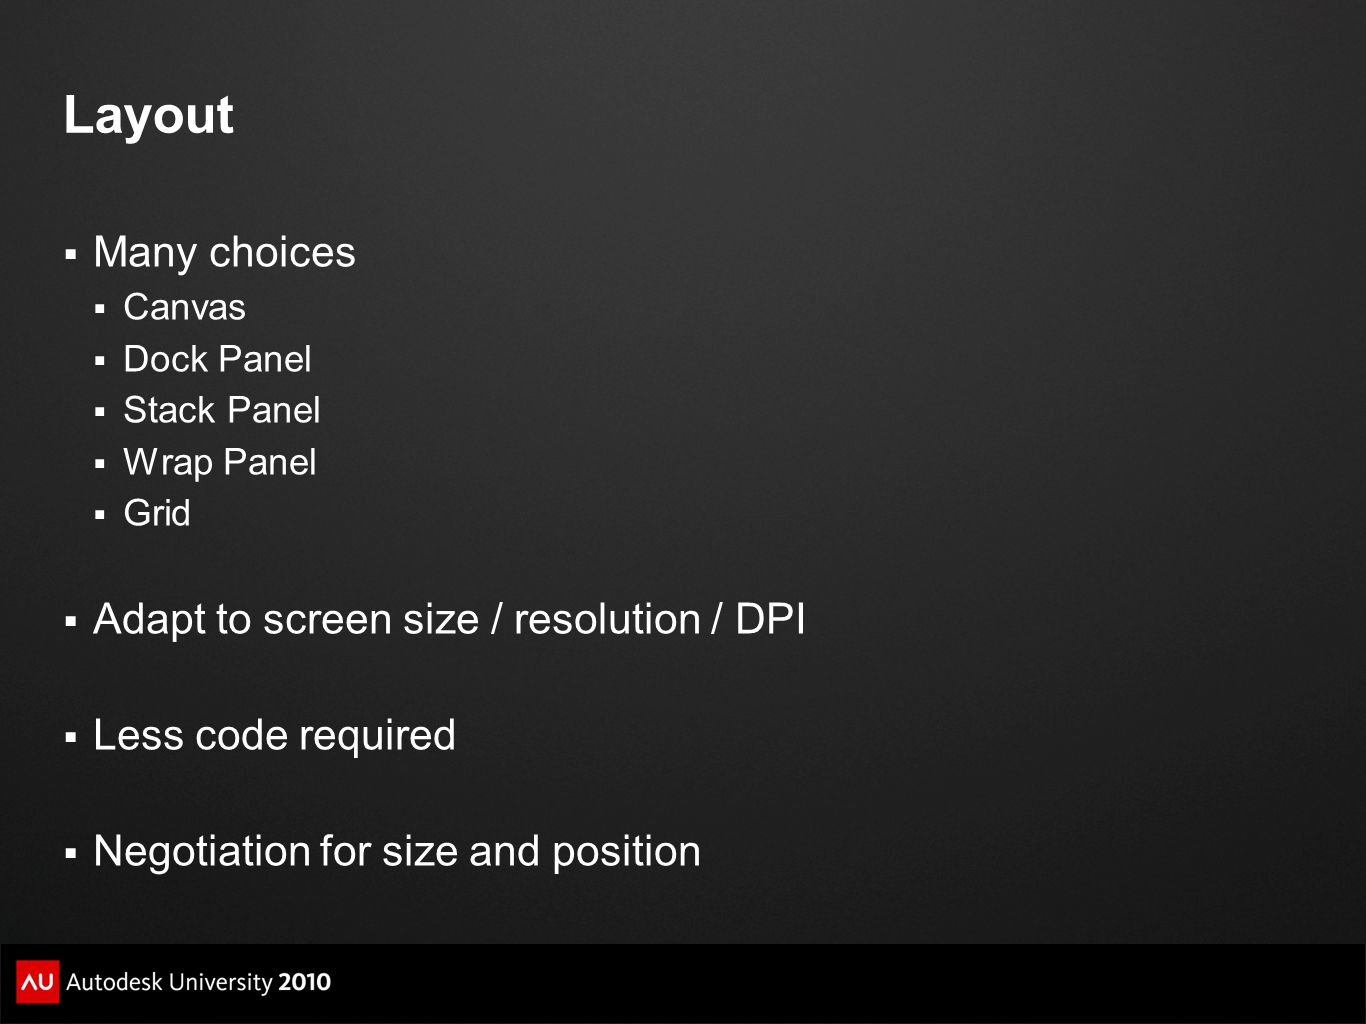 Layout Many choices Adapt to screen size / resolution / DPI